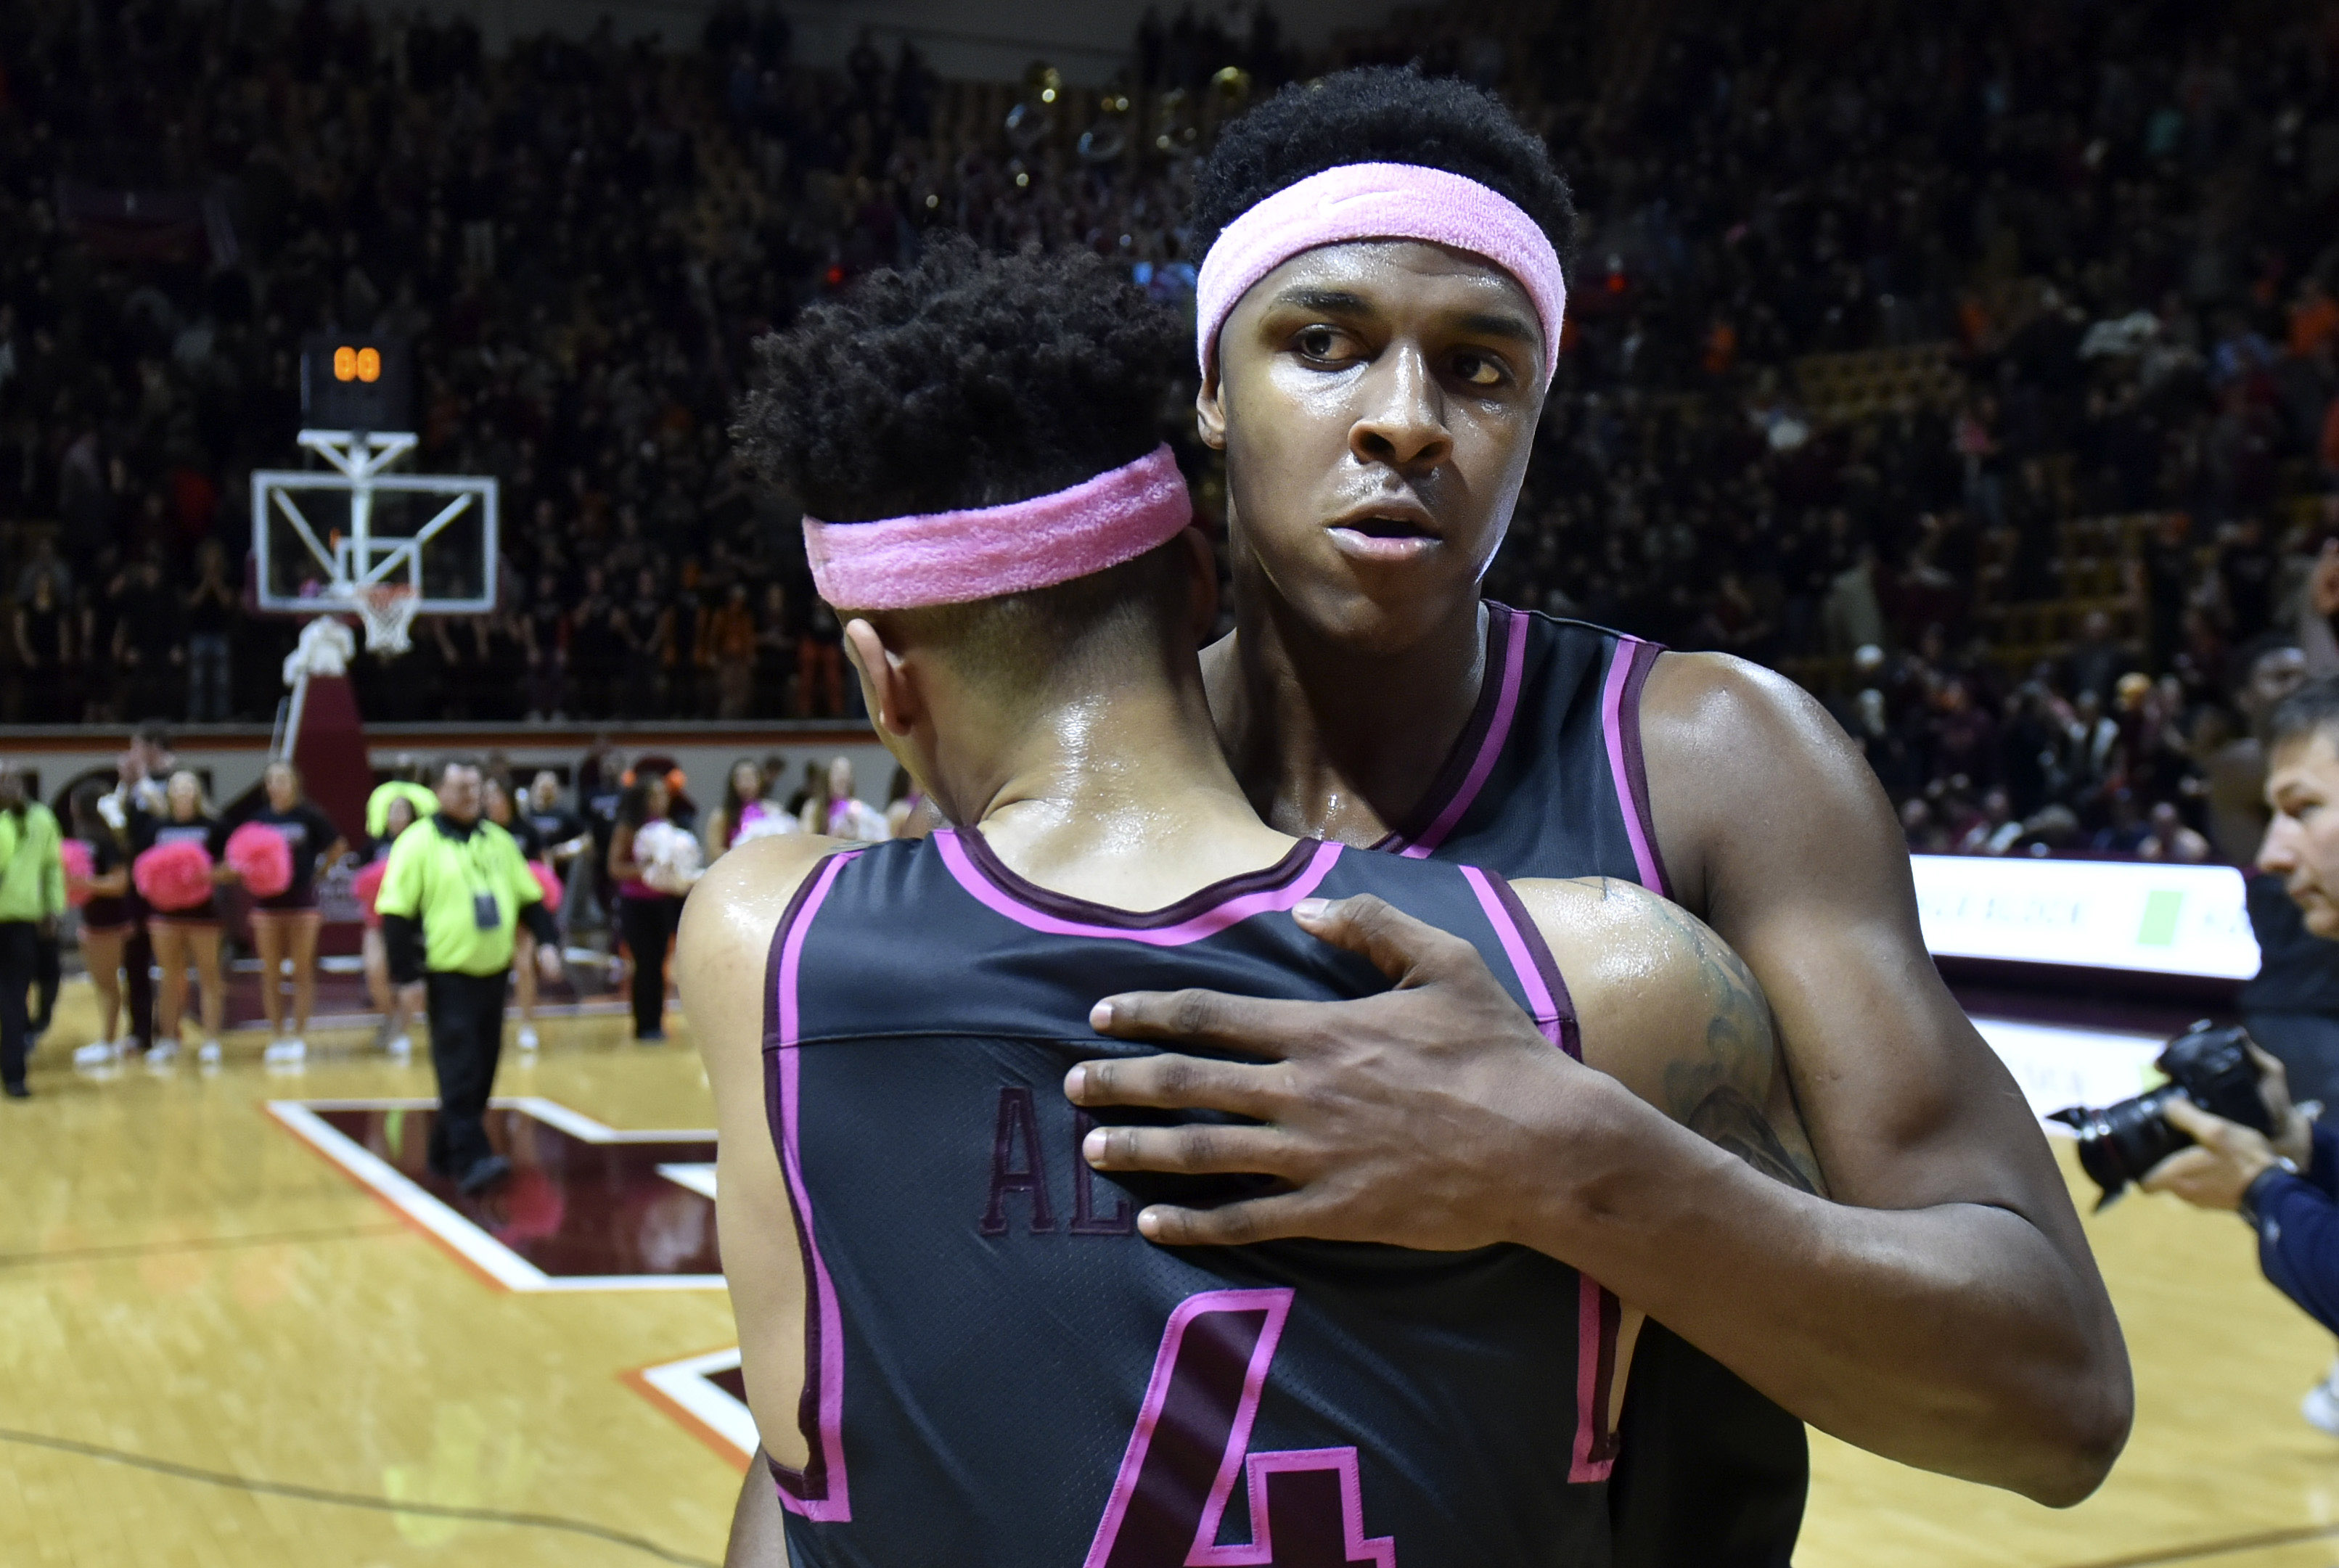 Jan 29, 2017; Blacksburg, VA, USA; Virginia Tech Hokies guard Seth Allen (4) is hugged by forward Zach LeDay (32) following the victory against the Boston College Eagles at Cassell Coliseum. Mandatory Credit: Michael Shroyer-USA TODAY Sports